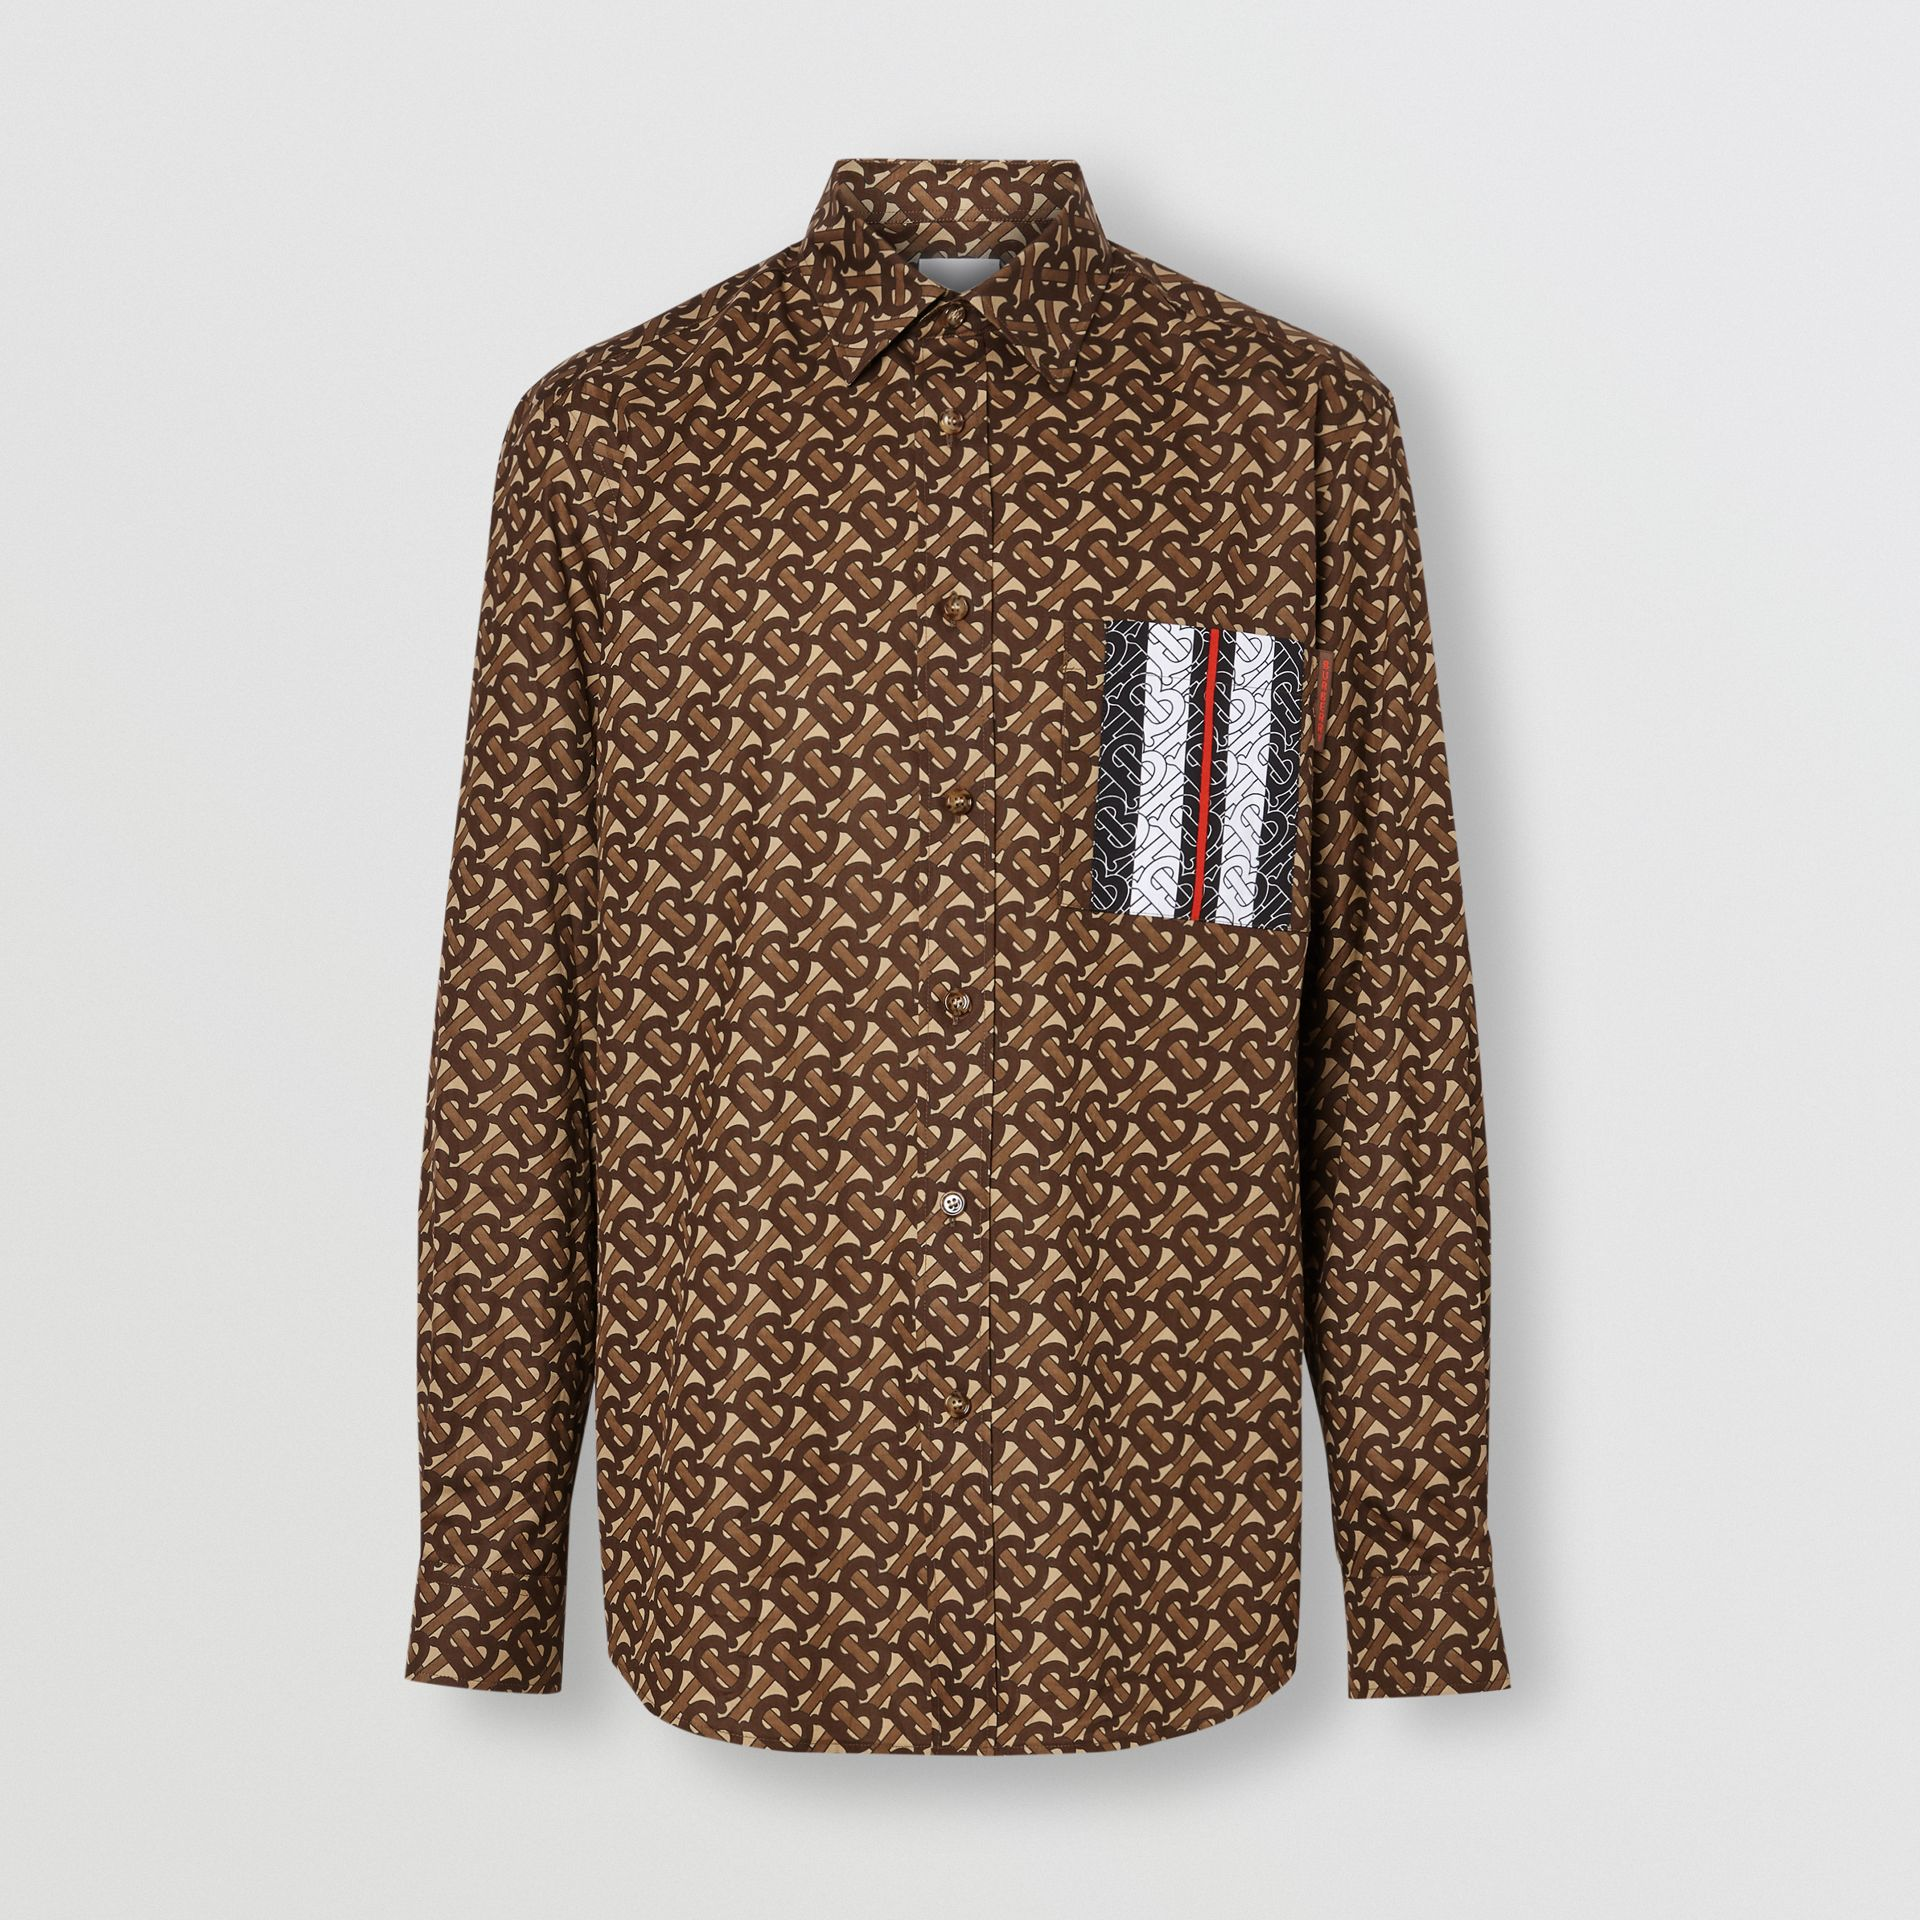 Monogram Stripe Print Cotton Shirt in Bridle Brown - Men | Burberry Hong Kong S.A.R - gallery image 3